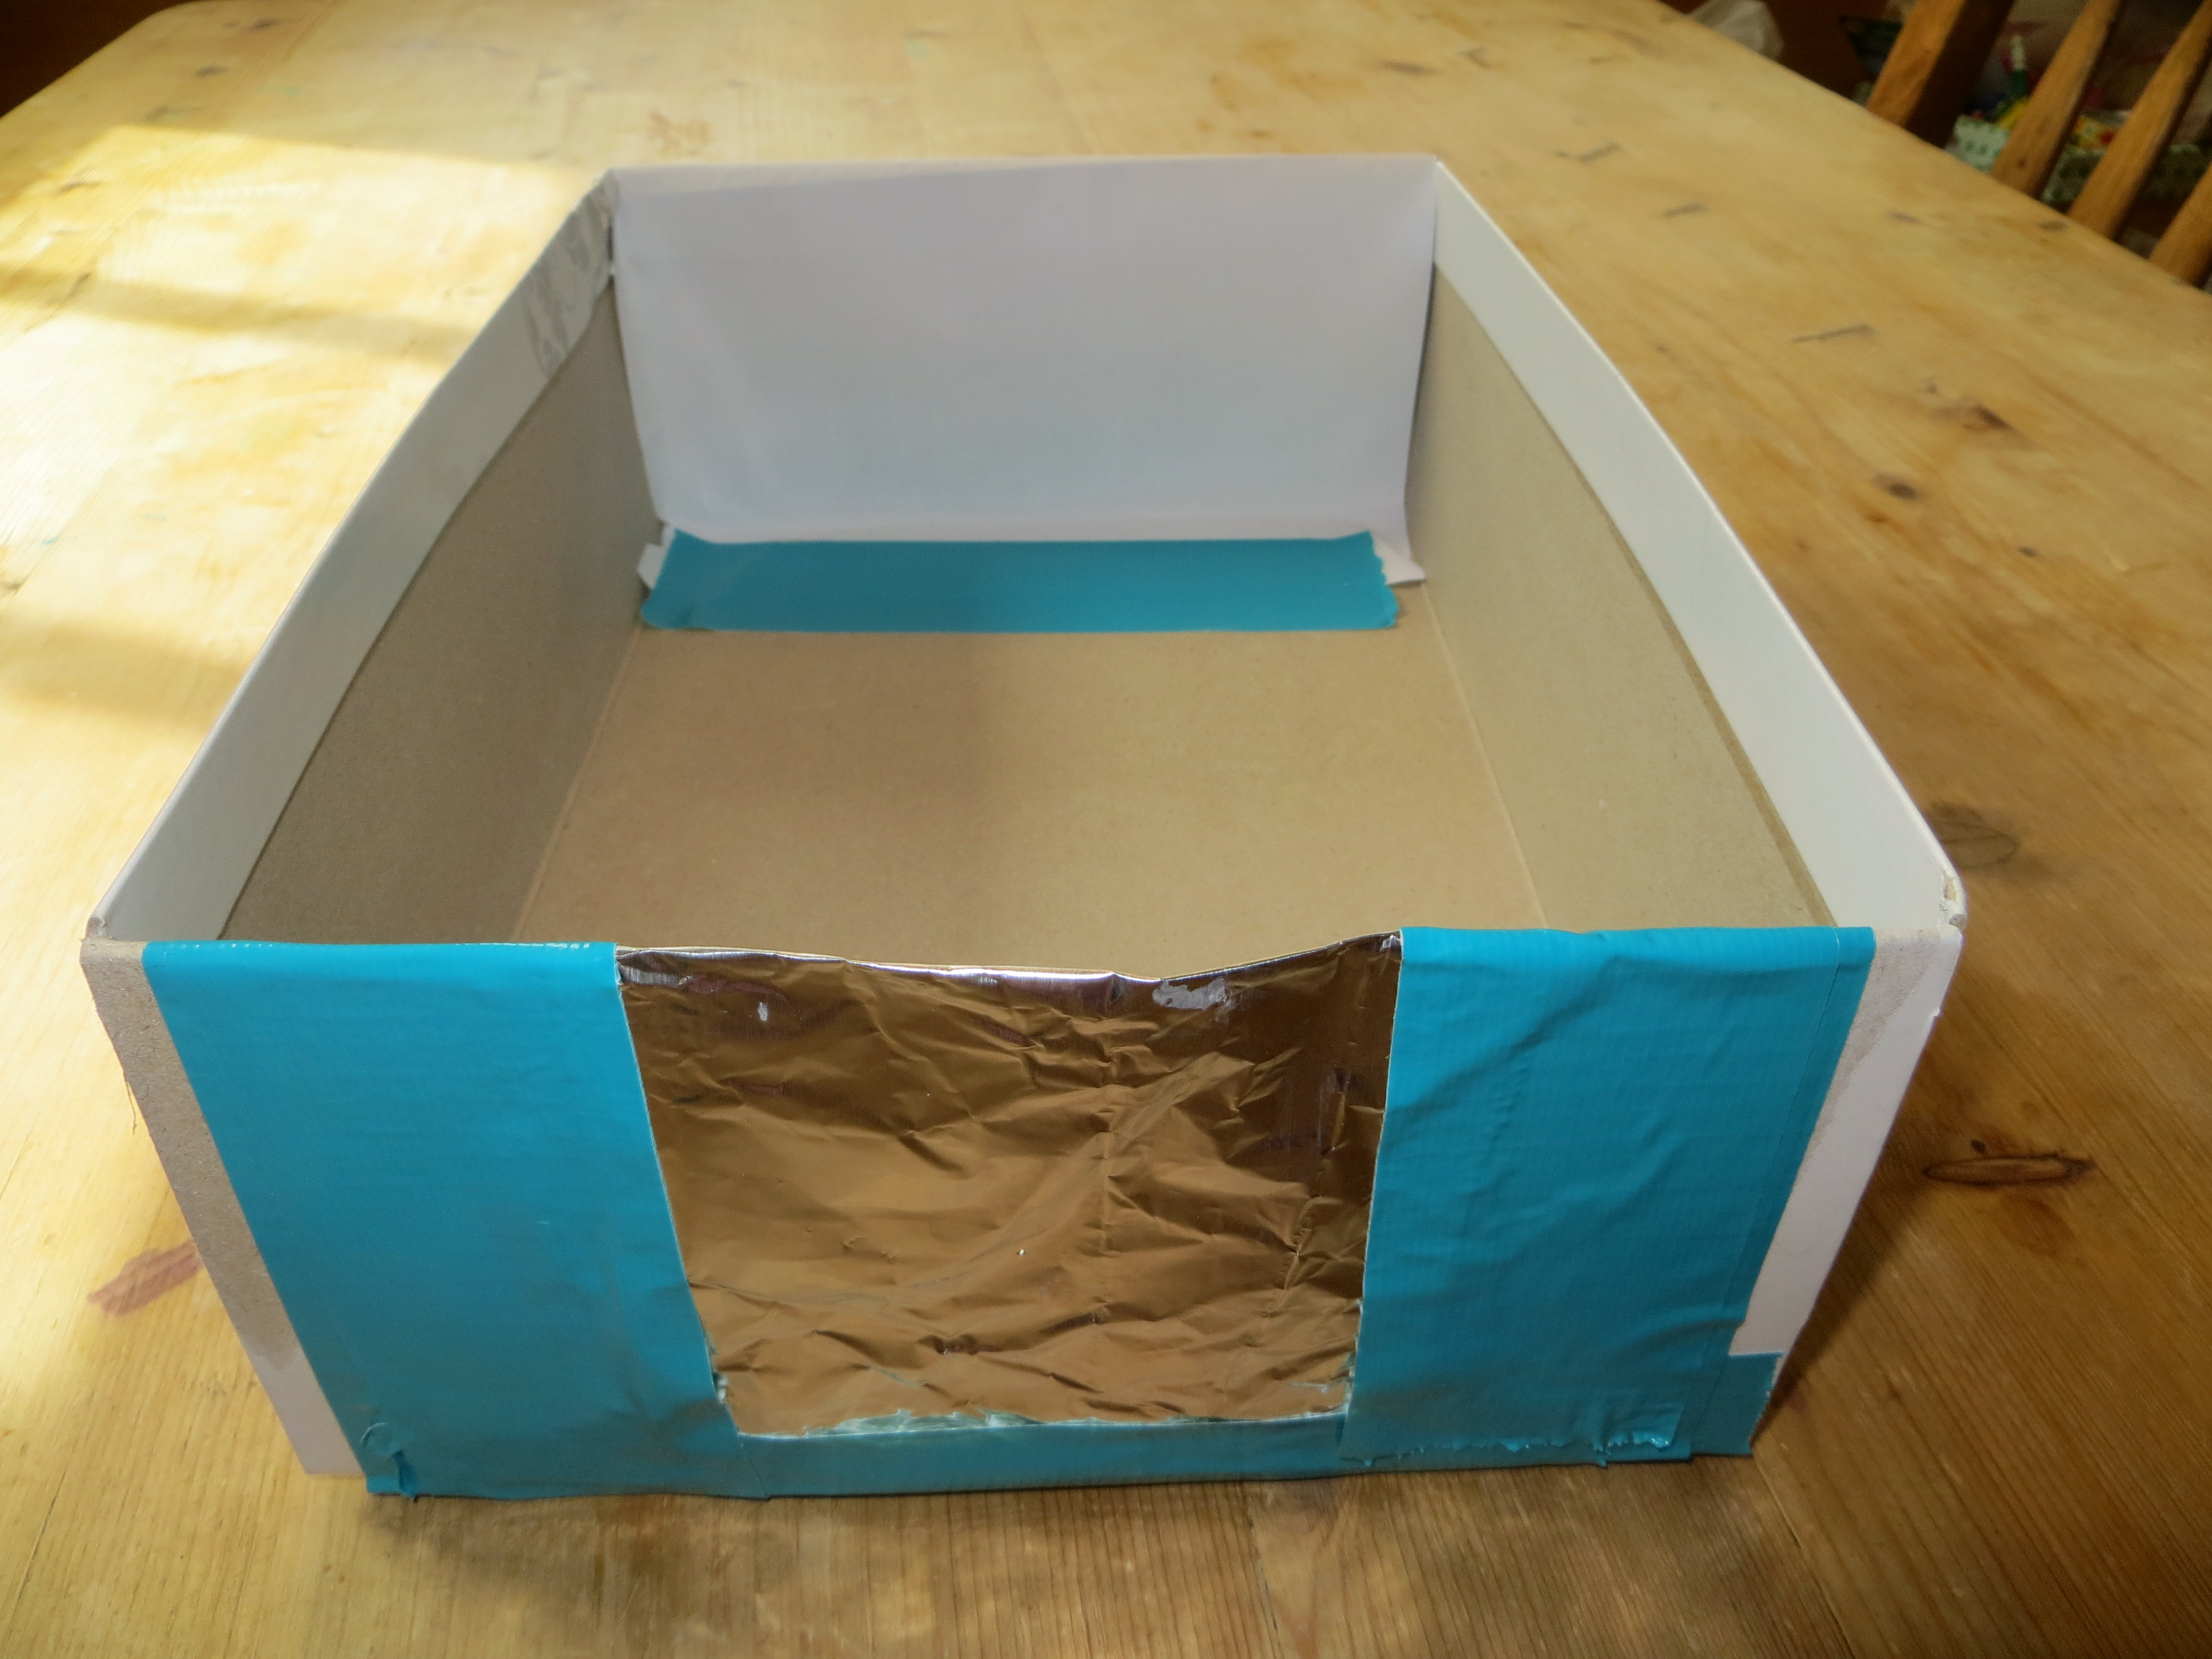 How To Make Shoe Box Eclipse Viewer